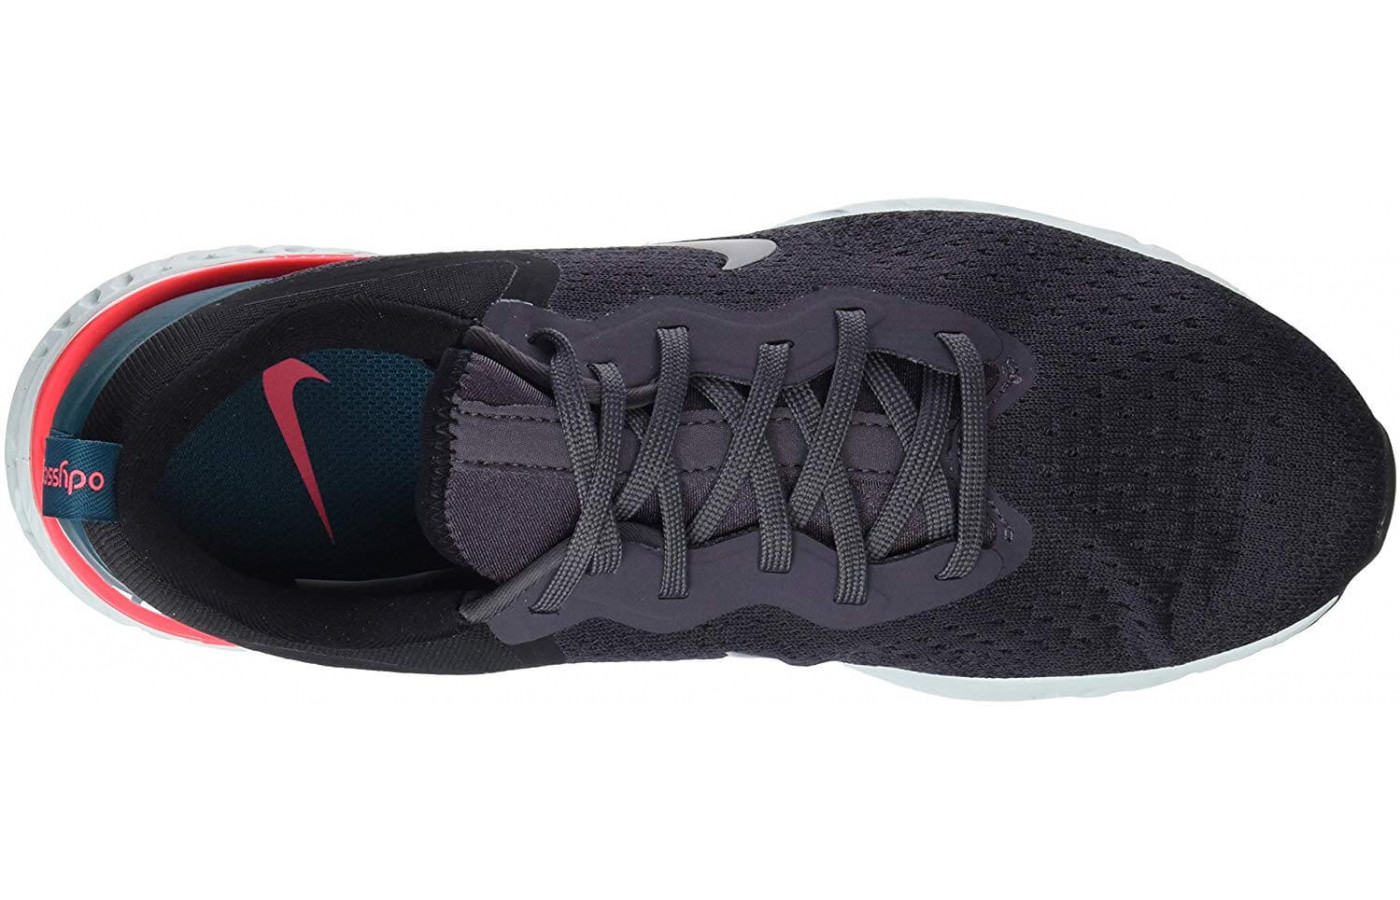 The Odyssey React's neoprene tongue reduces irritation